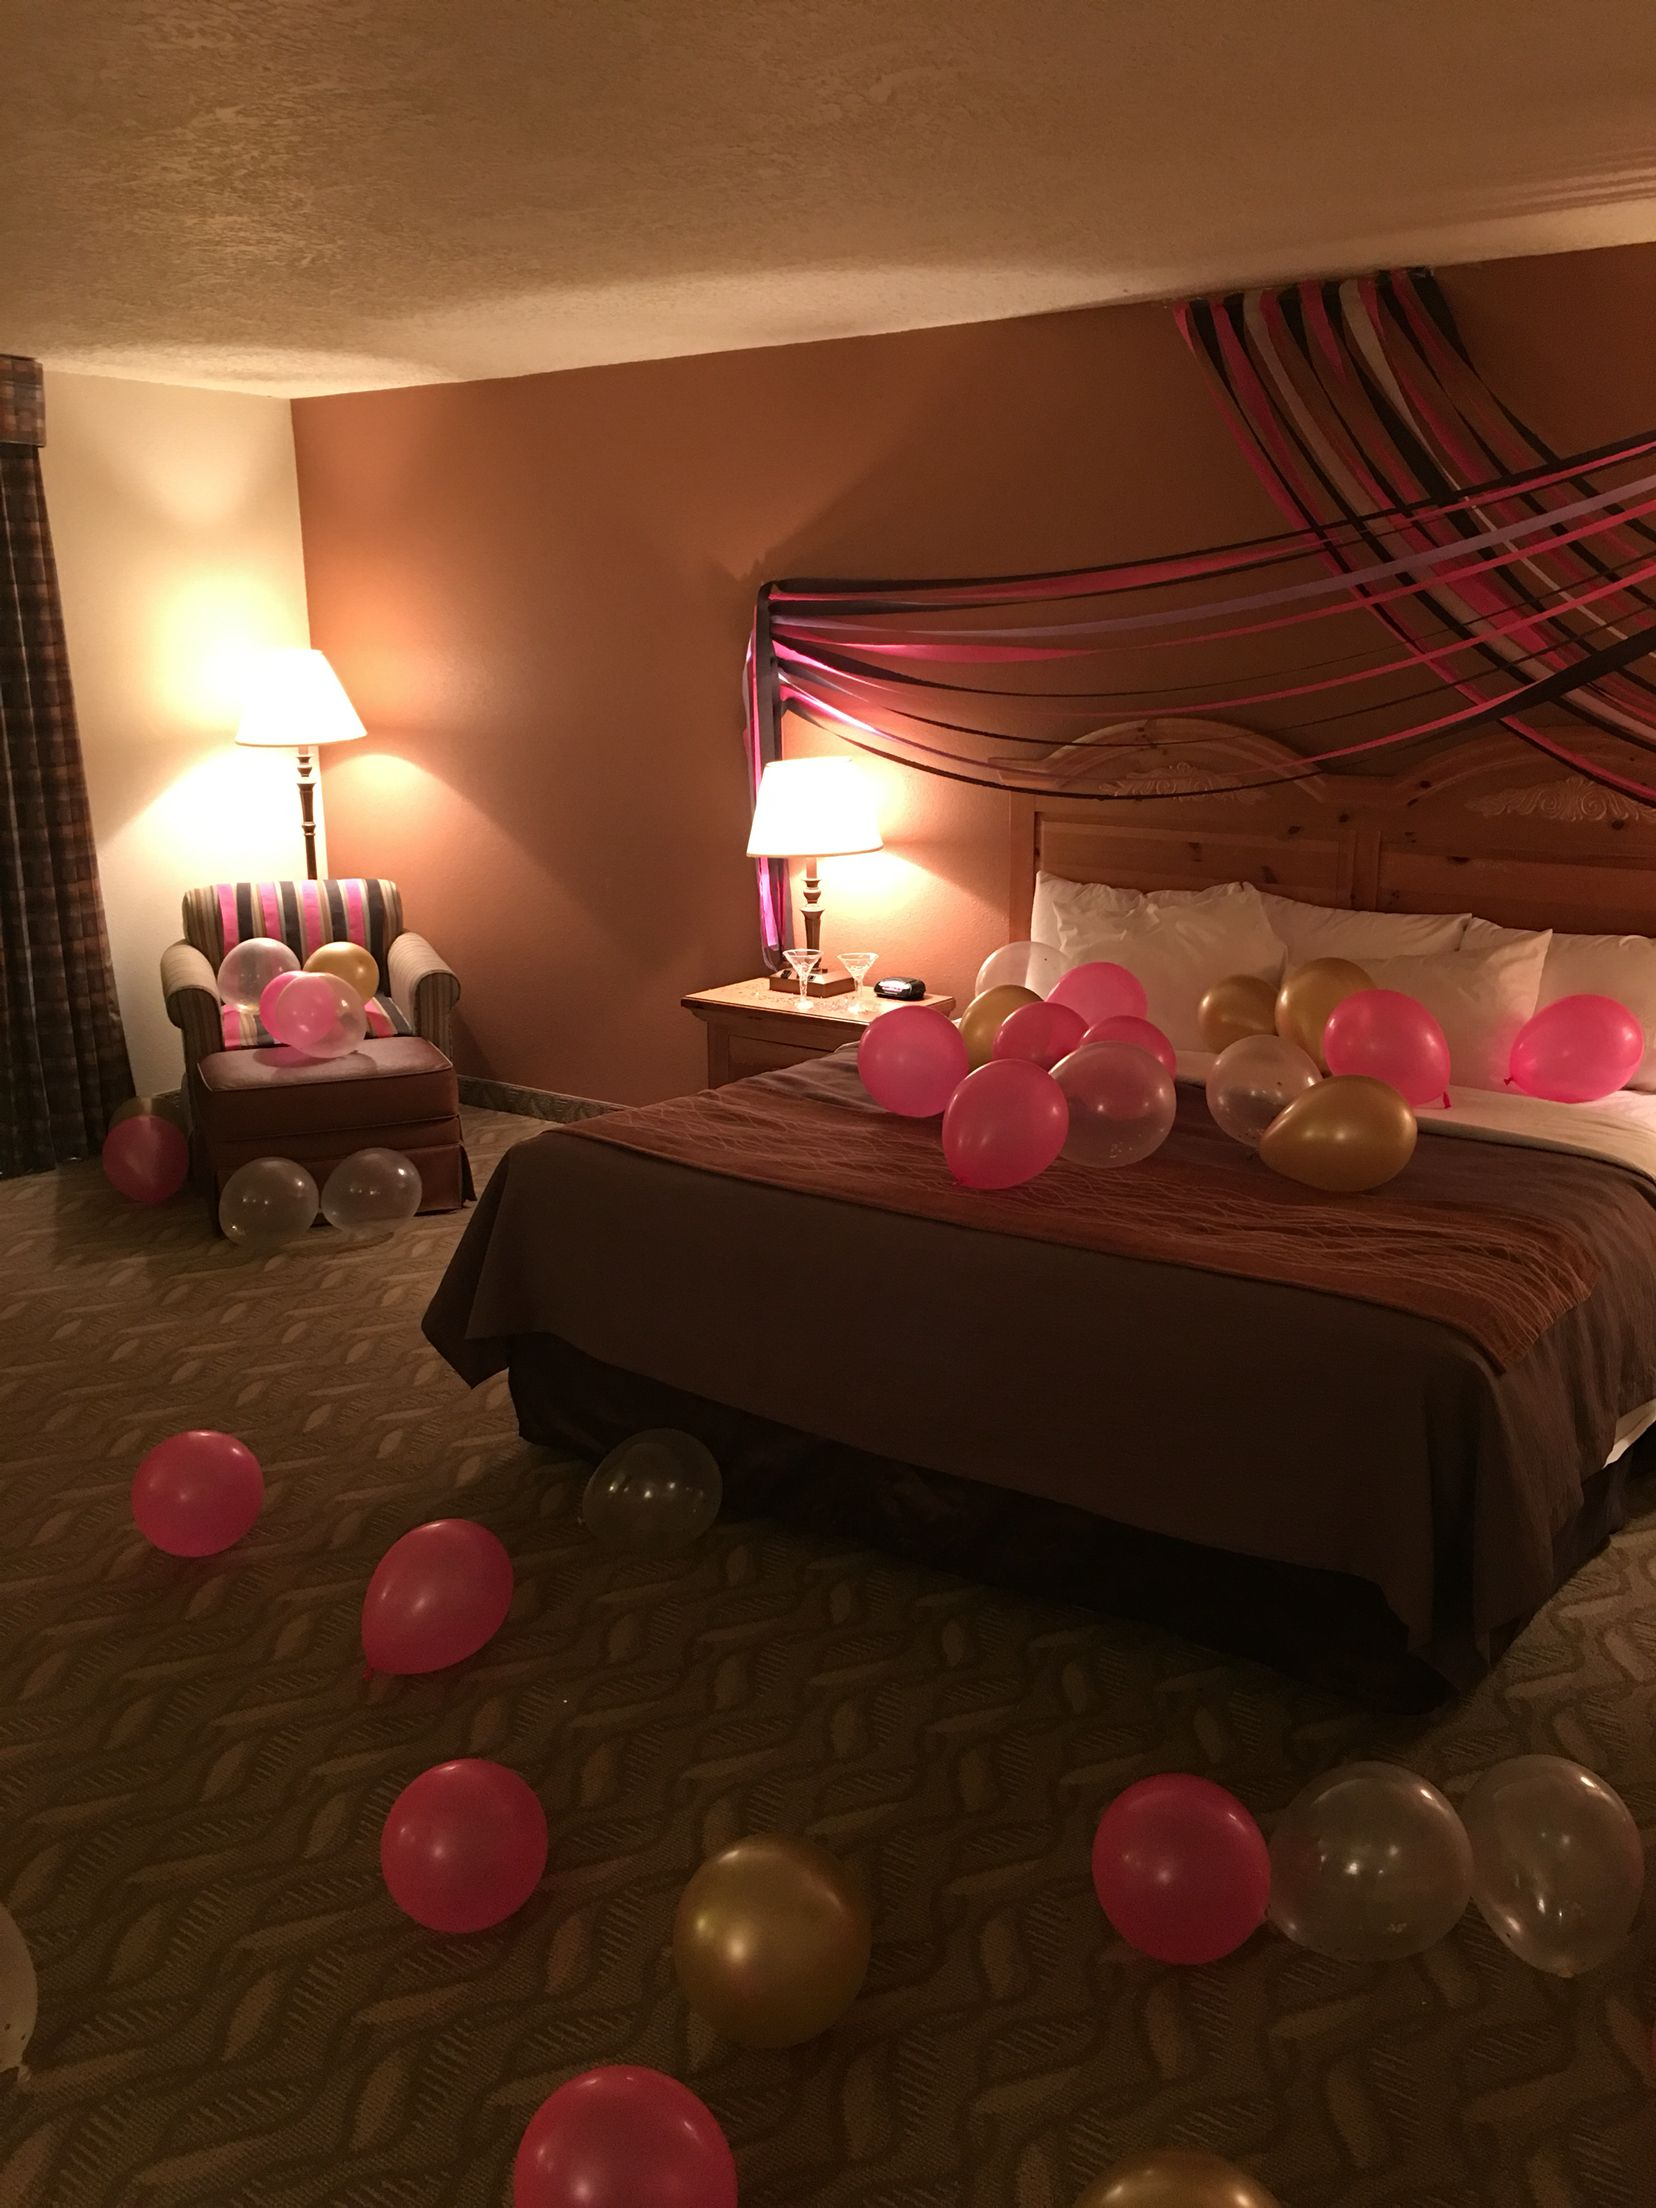 Surprise Birthday Hotel Decor For My Best Friend Birthday Room Decorations Hotel Room Decoration Hotel Party